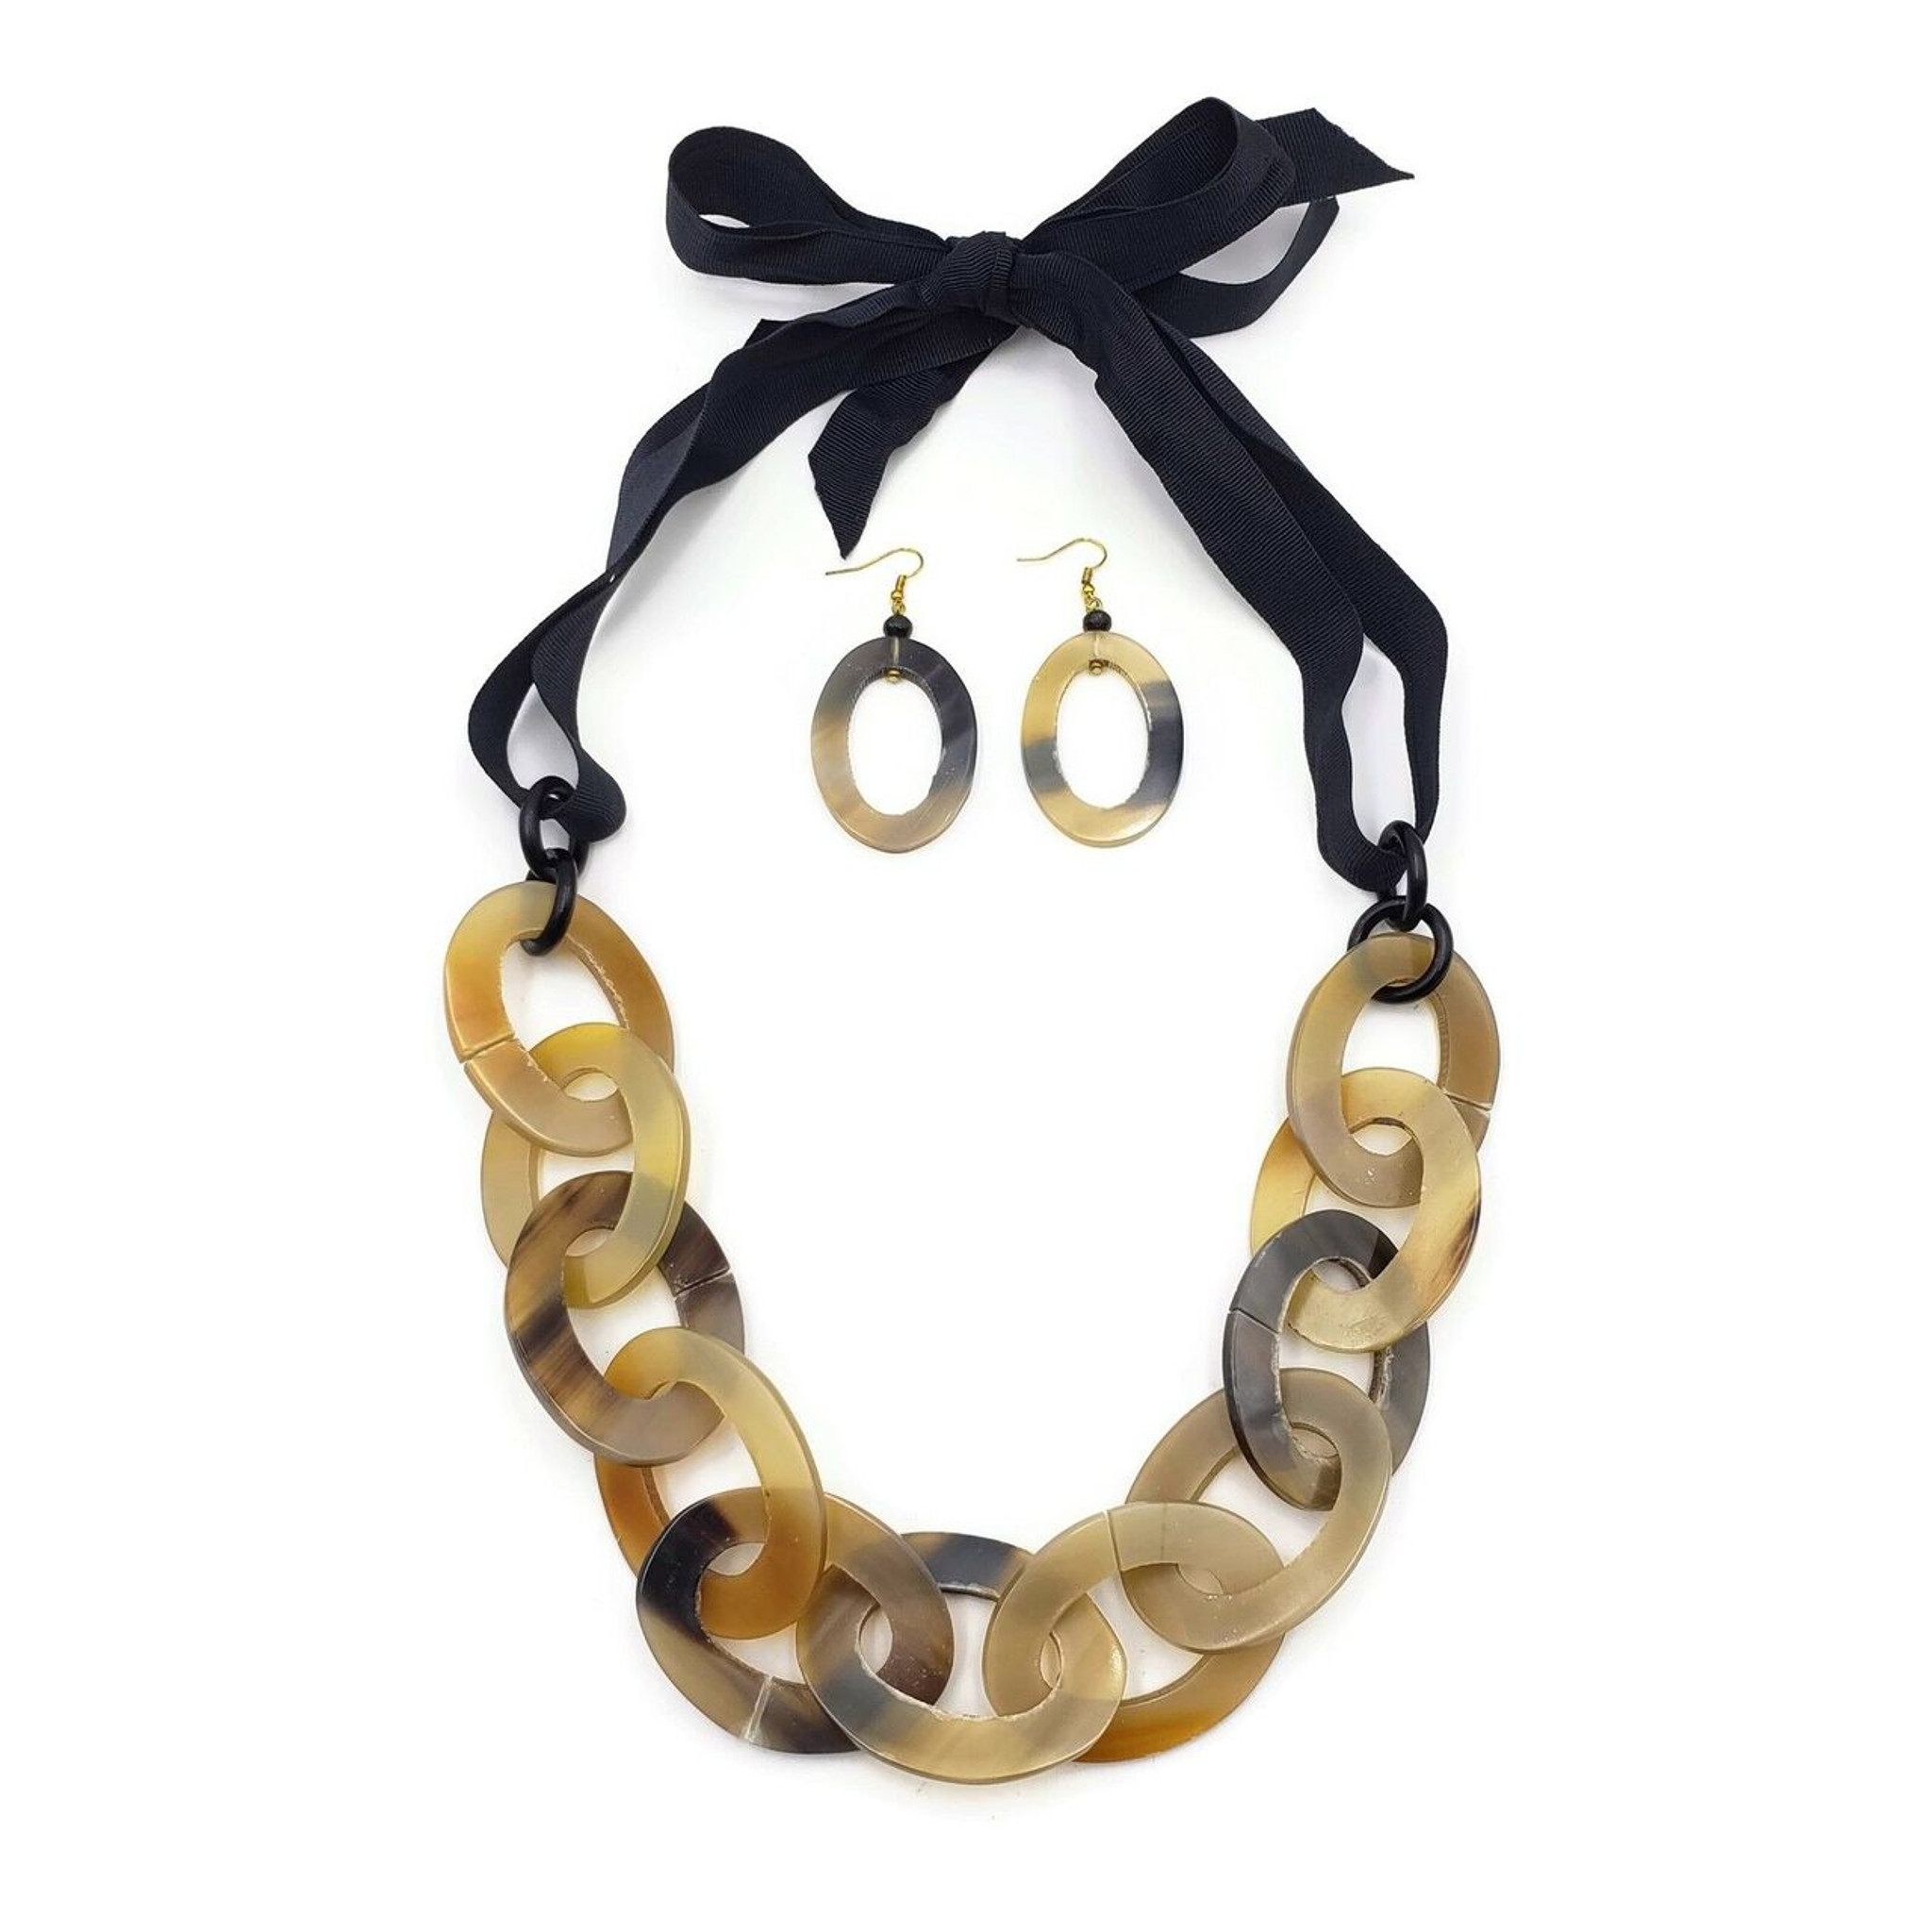 Iridessa Chunky Chain Genuine Buffalo Horn Ribbon Necklace with Matching Oval Hoop Earrings